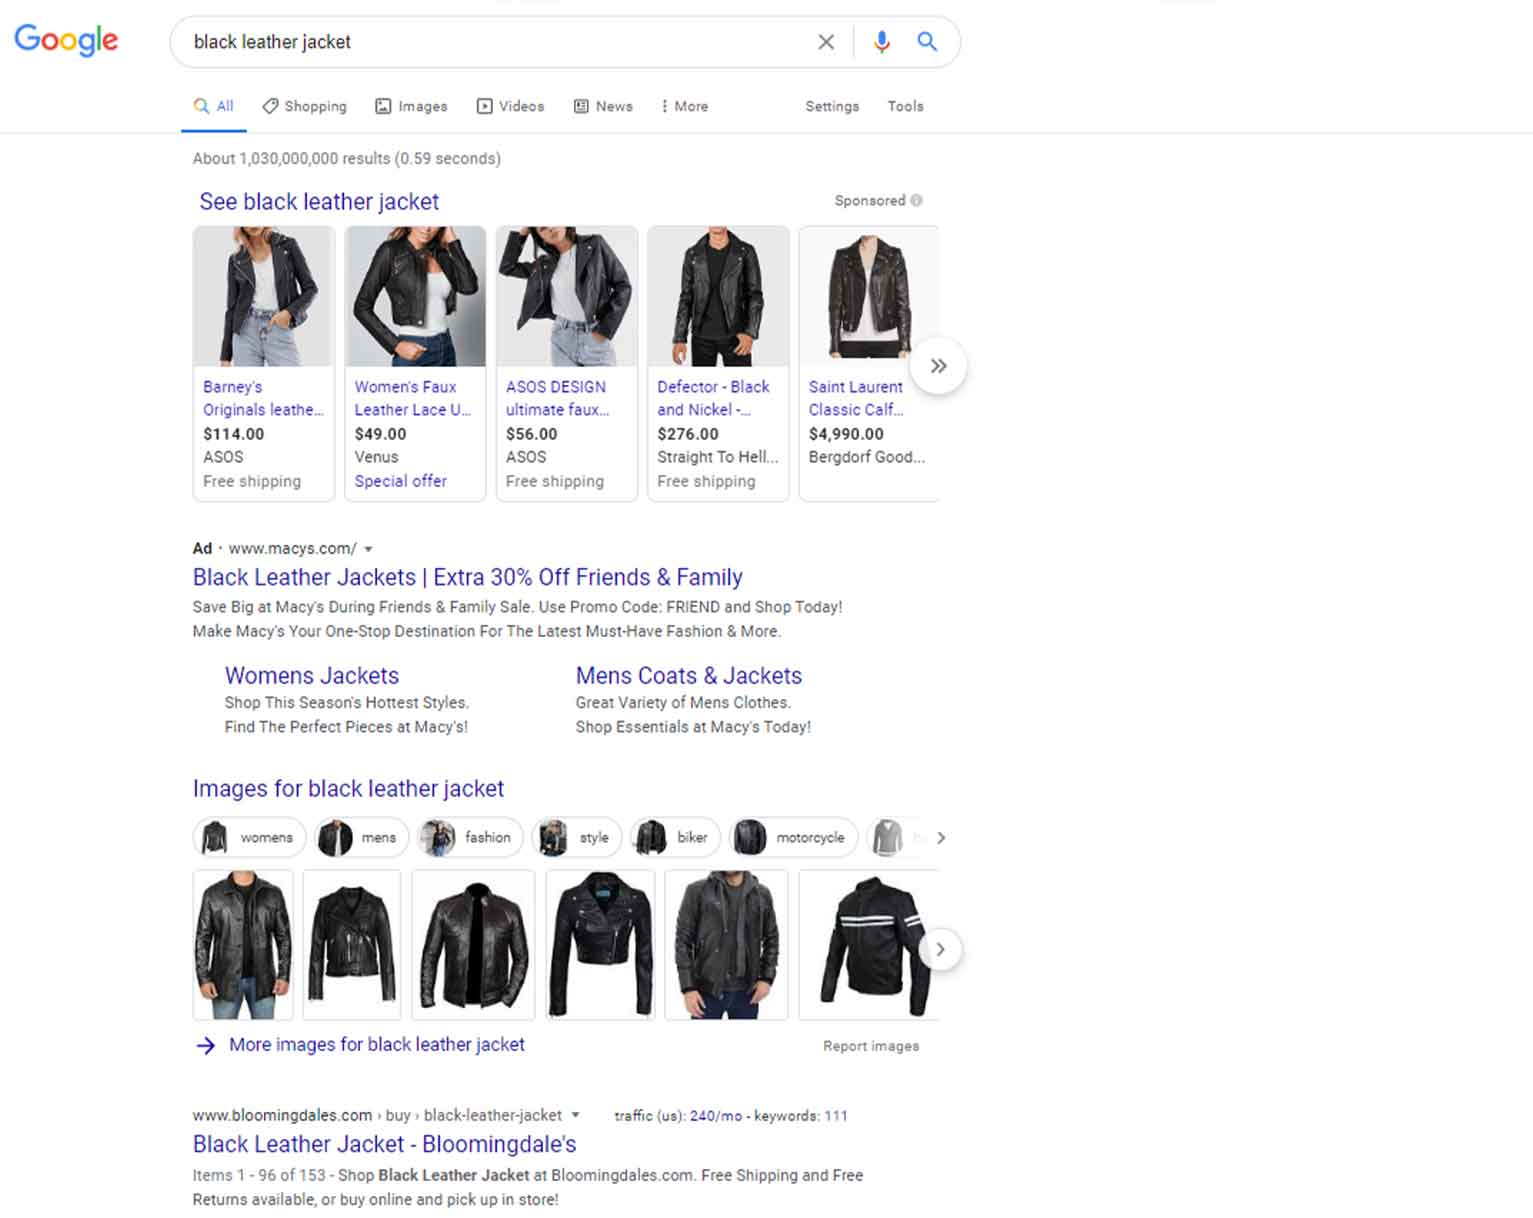 """The desktop SERP result of """"black leather jacket"""" includes shopping results, an ad and images."""